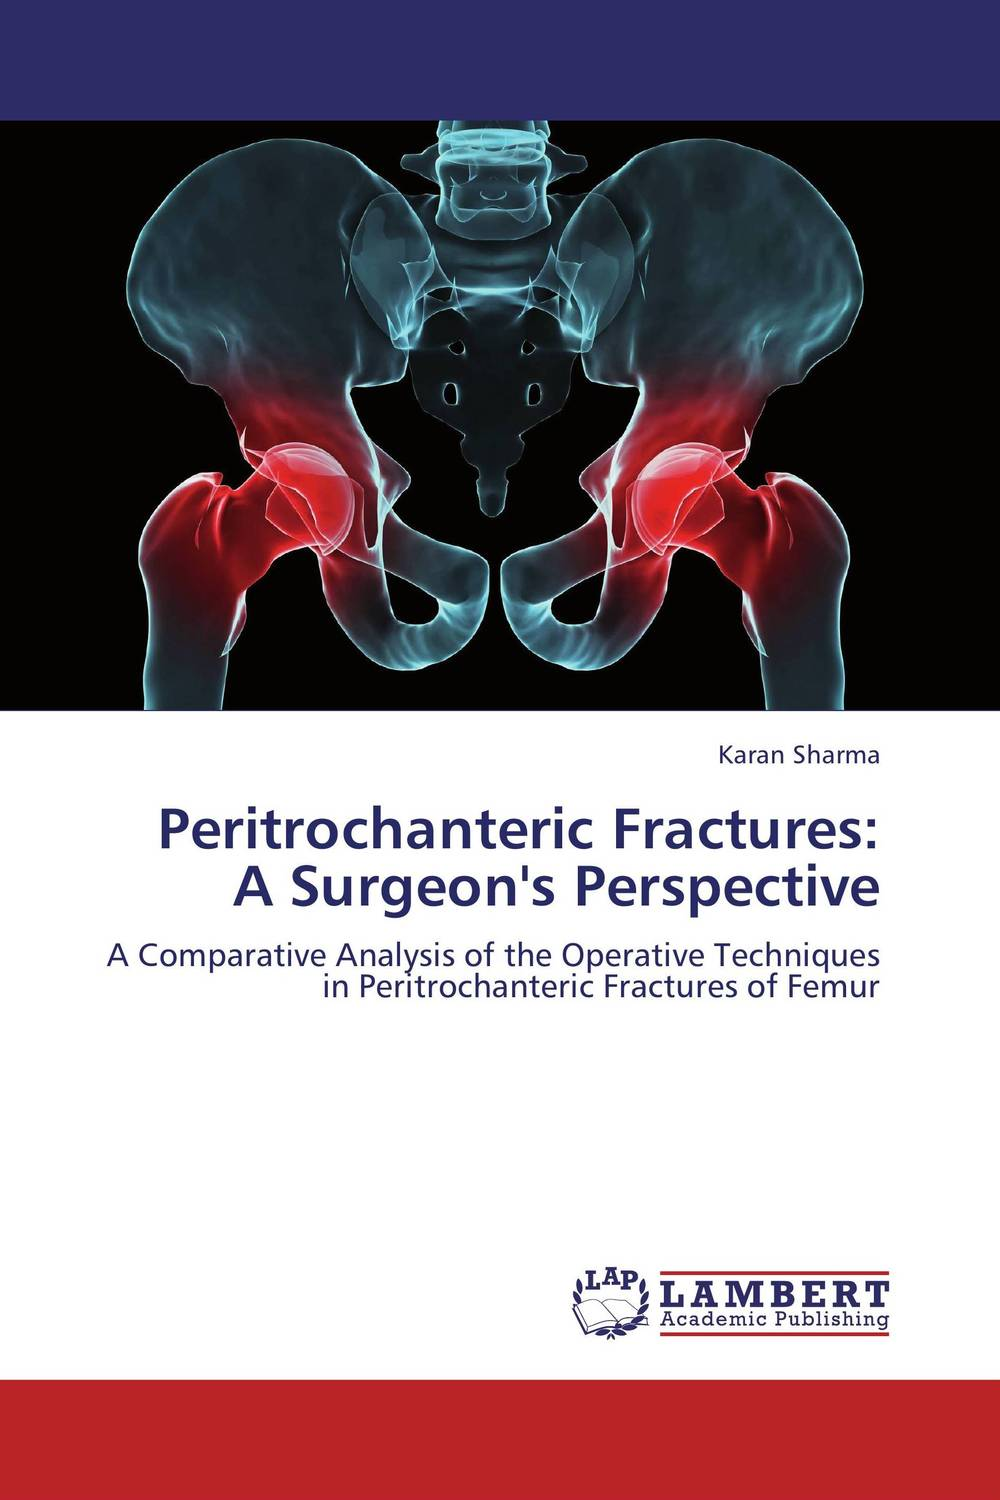 Peritrochanteric Fractures:  A Surgeon's Perspective fibular grafting in femoral neck fractures with posterior comminution